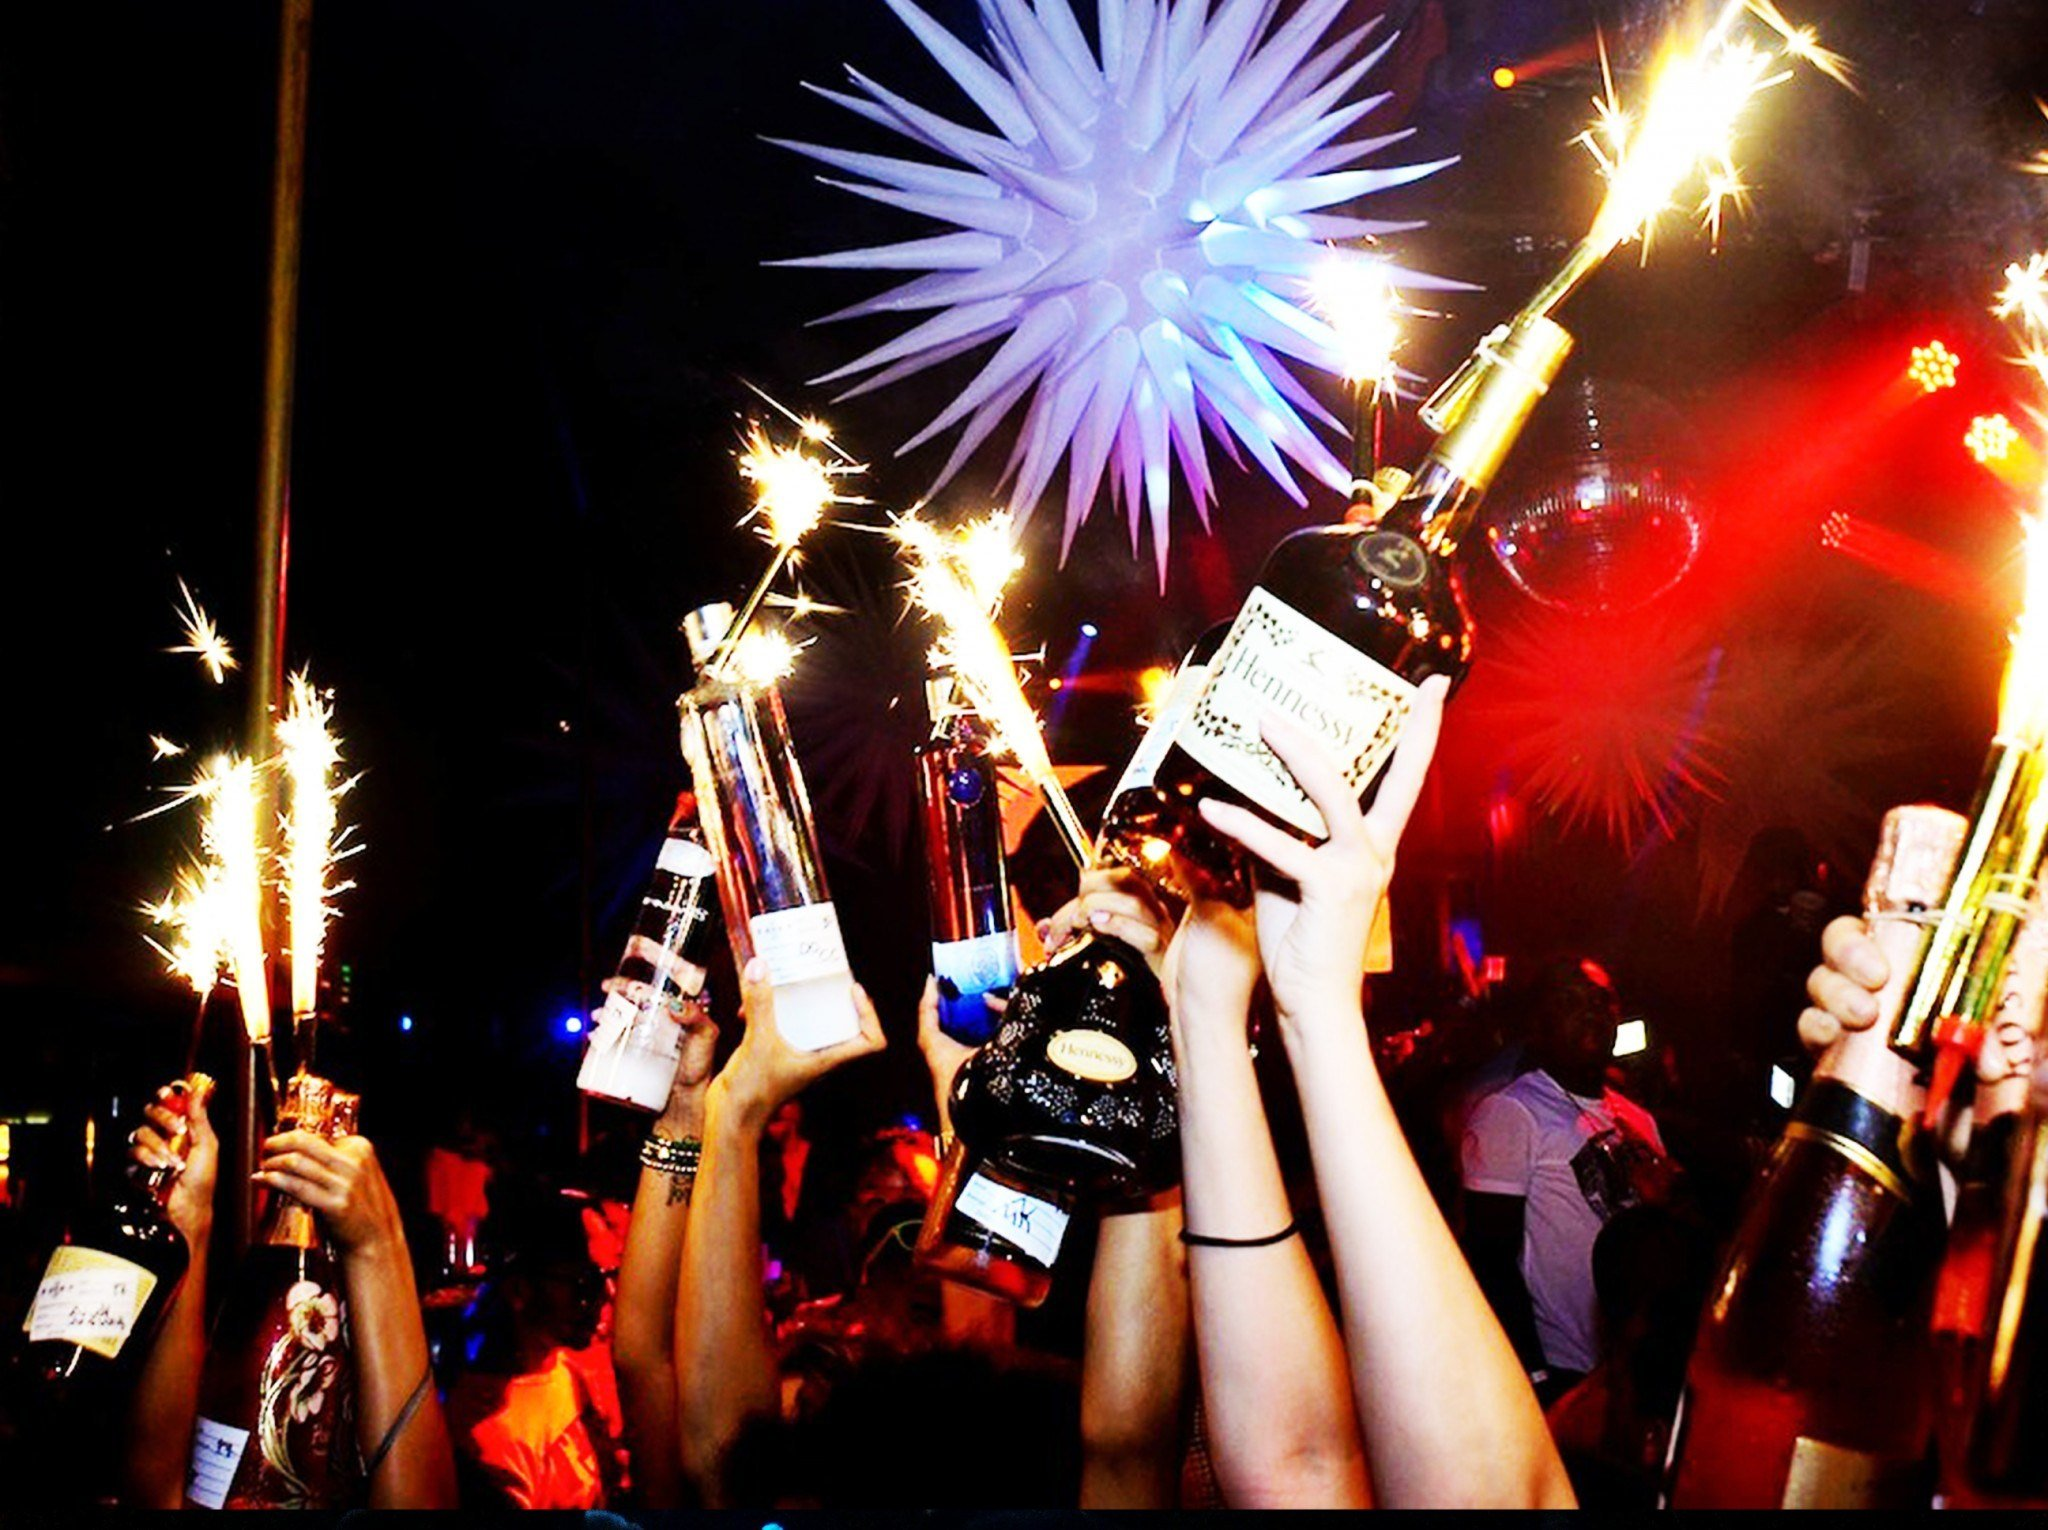 Best Bottle Service And Hummer Tour With Pictures